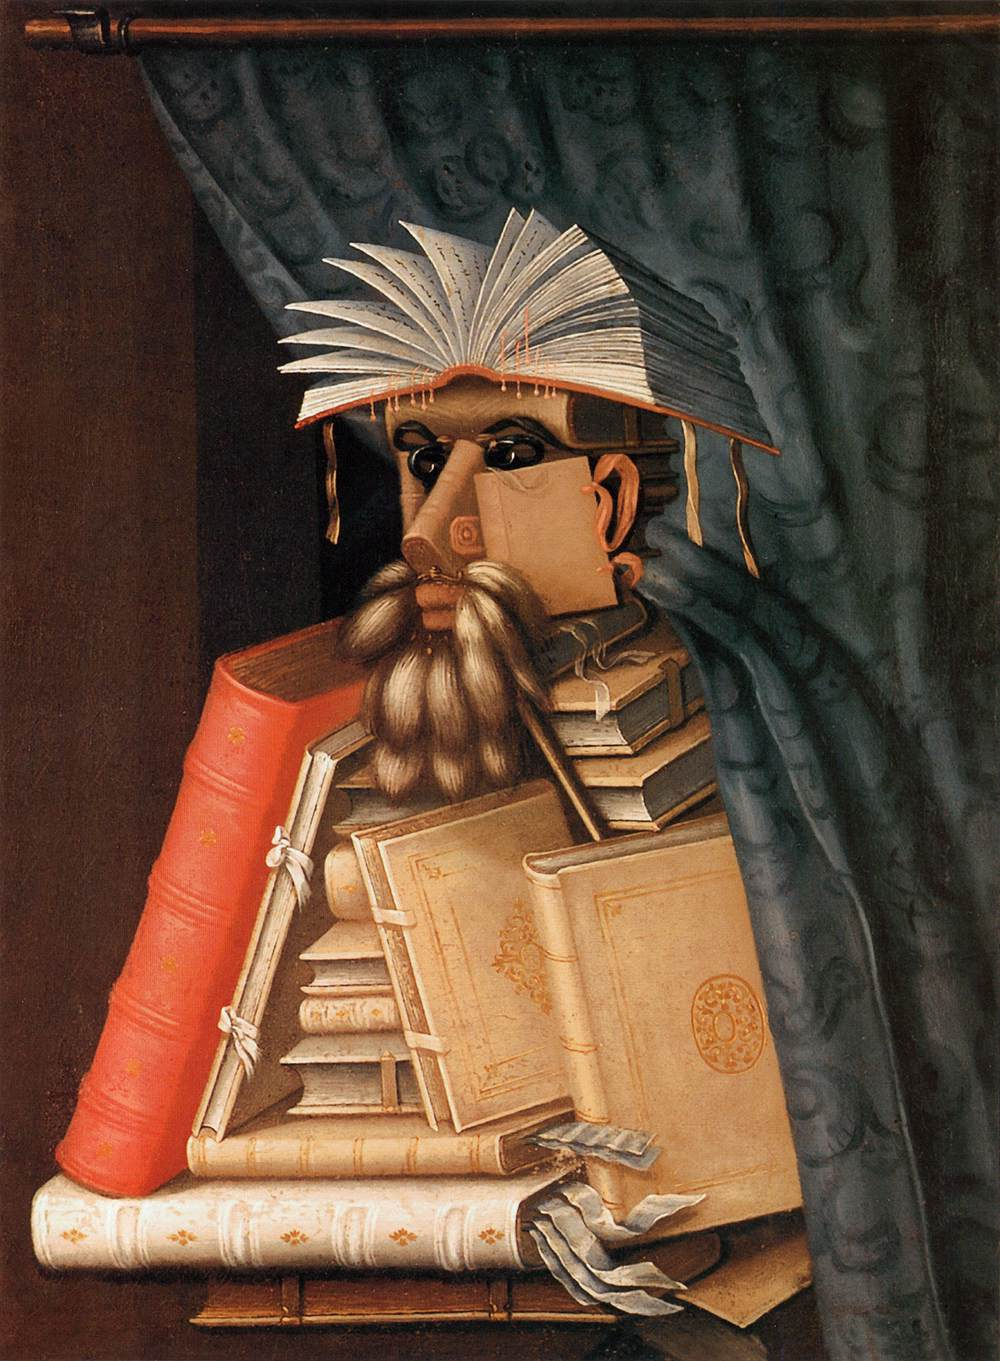 The Librarian by Guiseppe Arcimboldo